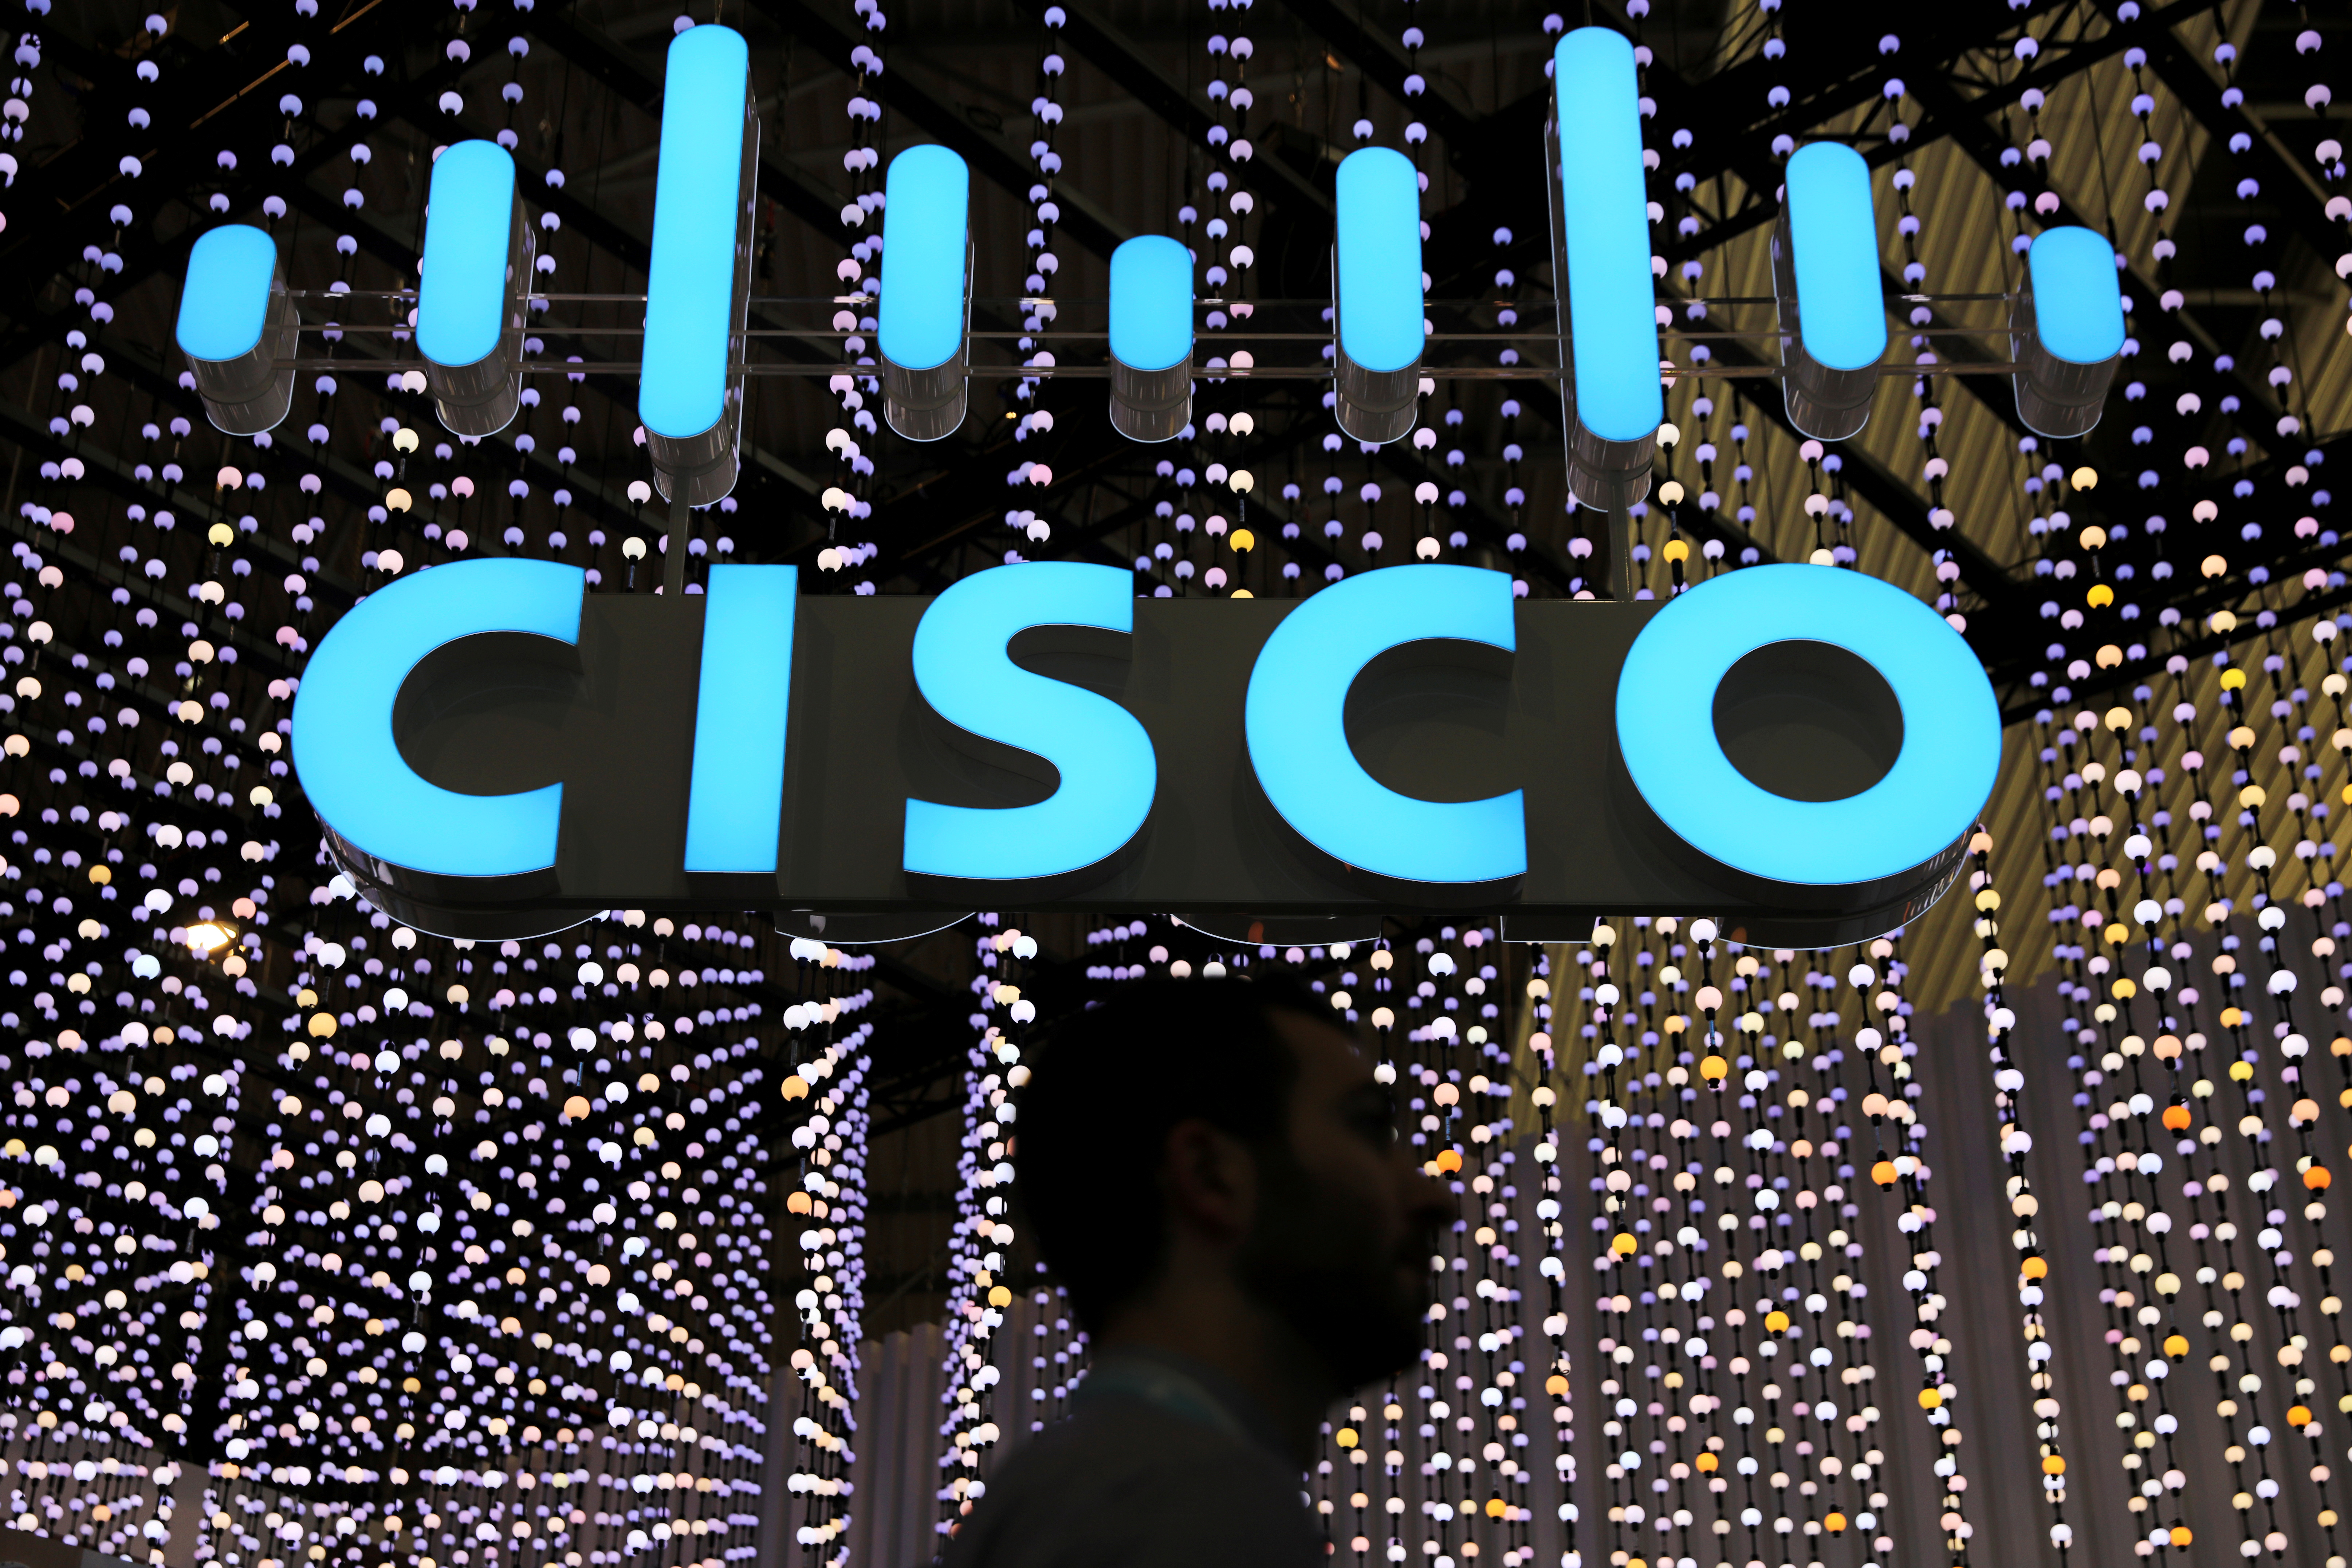 A man passes under a Cisco logo at the Mobile World Congress in Barcelona, Spain February 25, 2019. REUTERS/Sergio Perez/File Photo